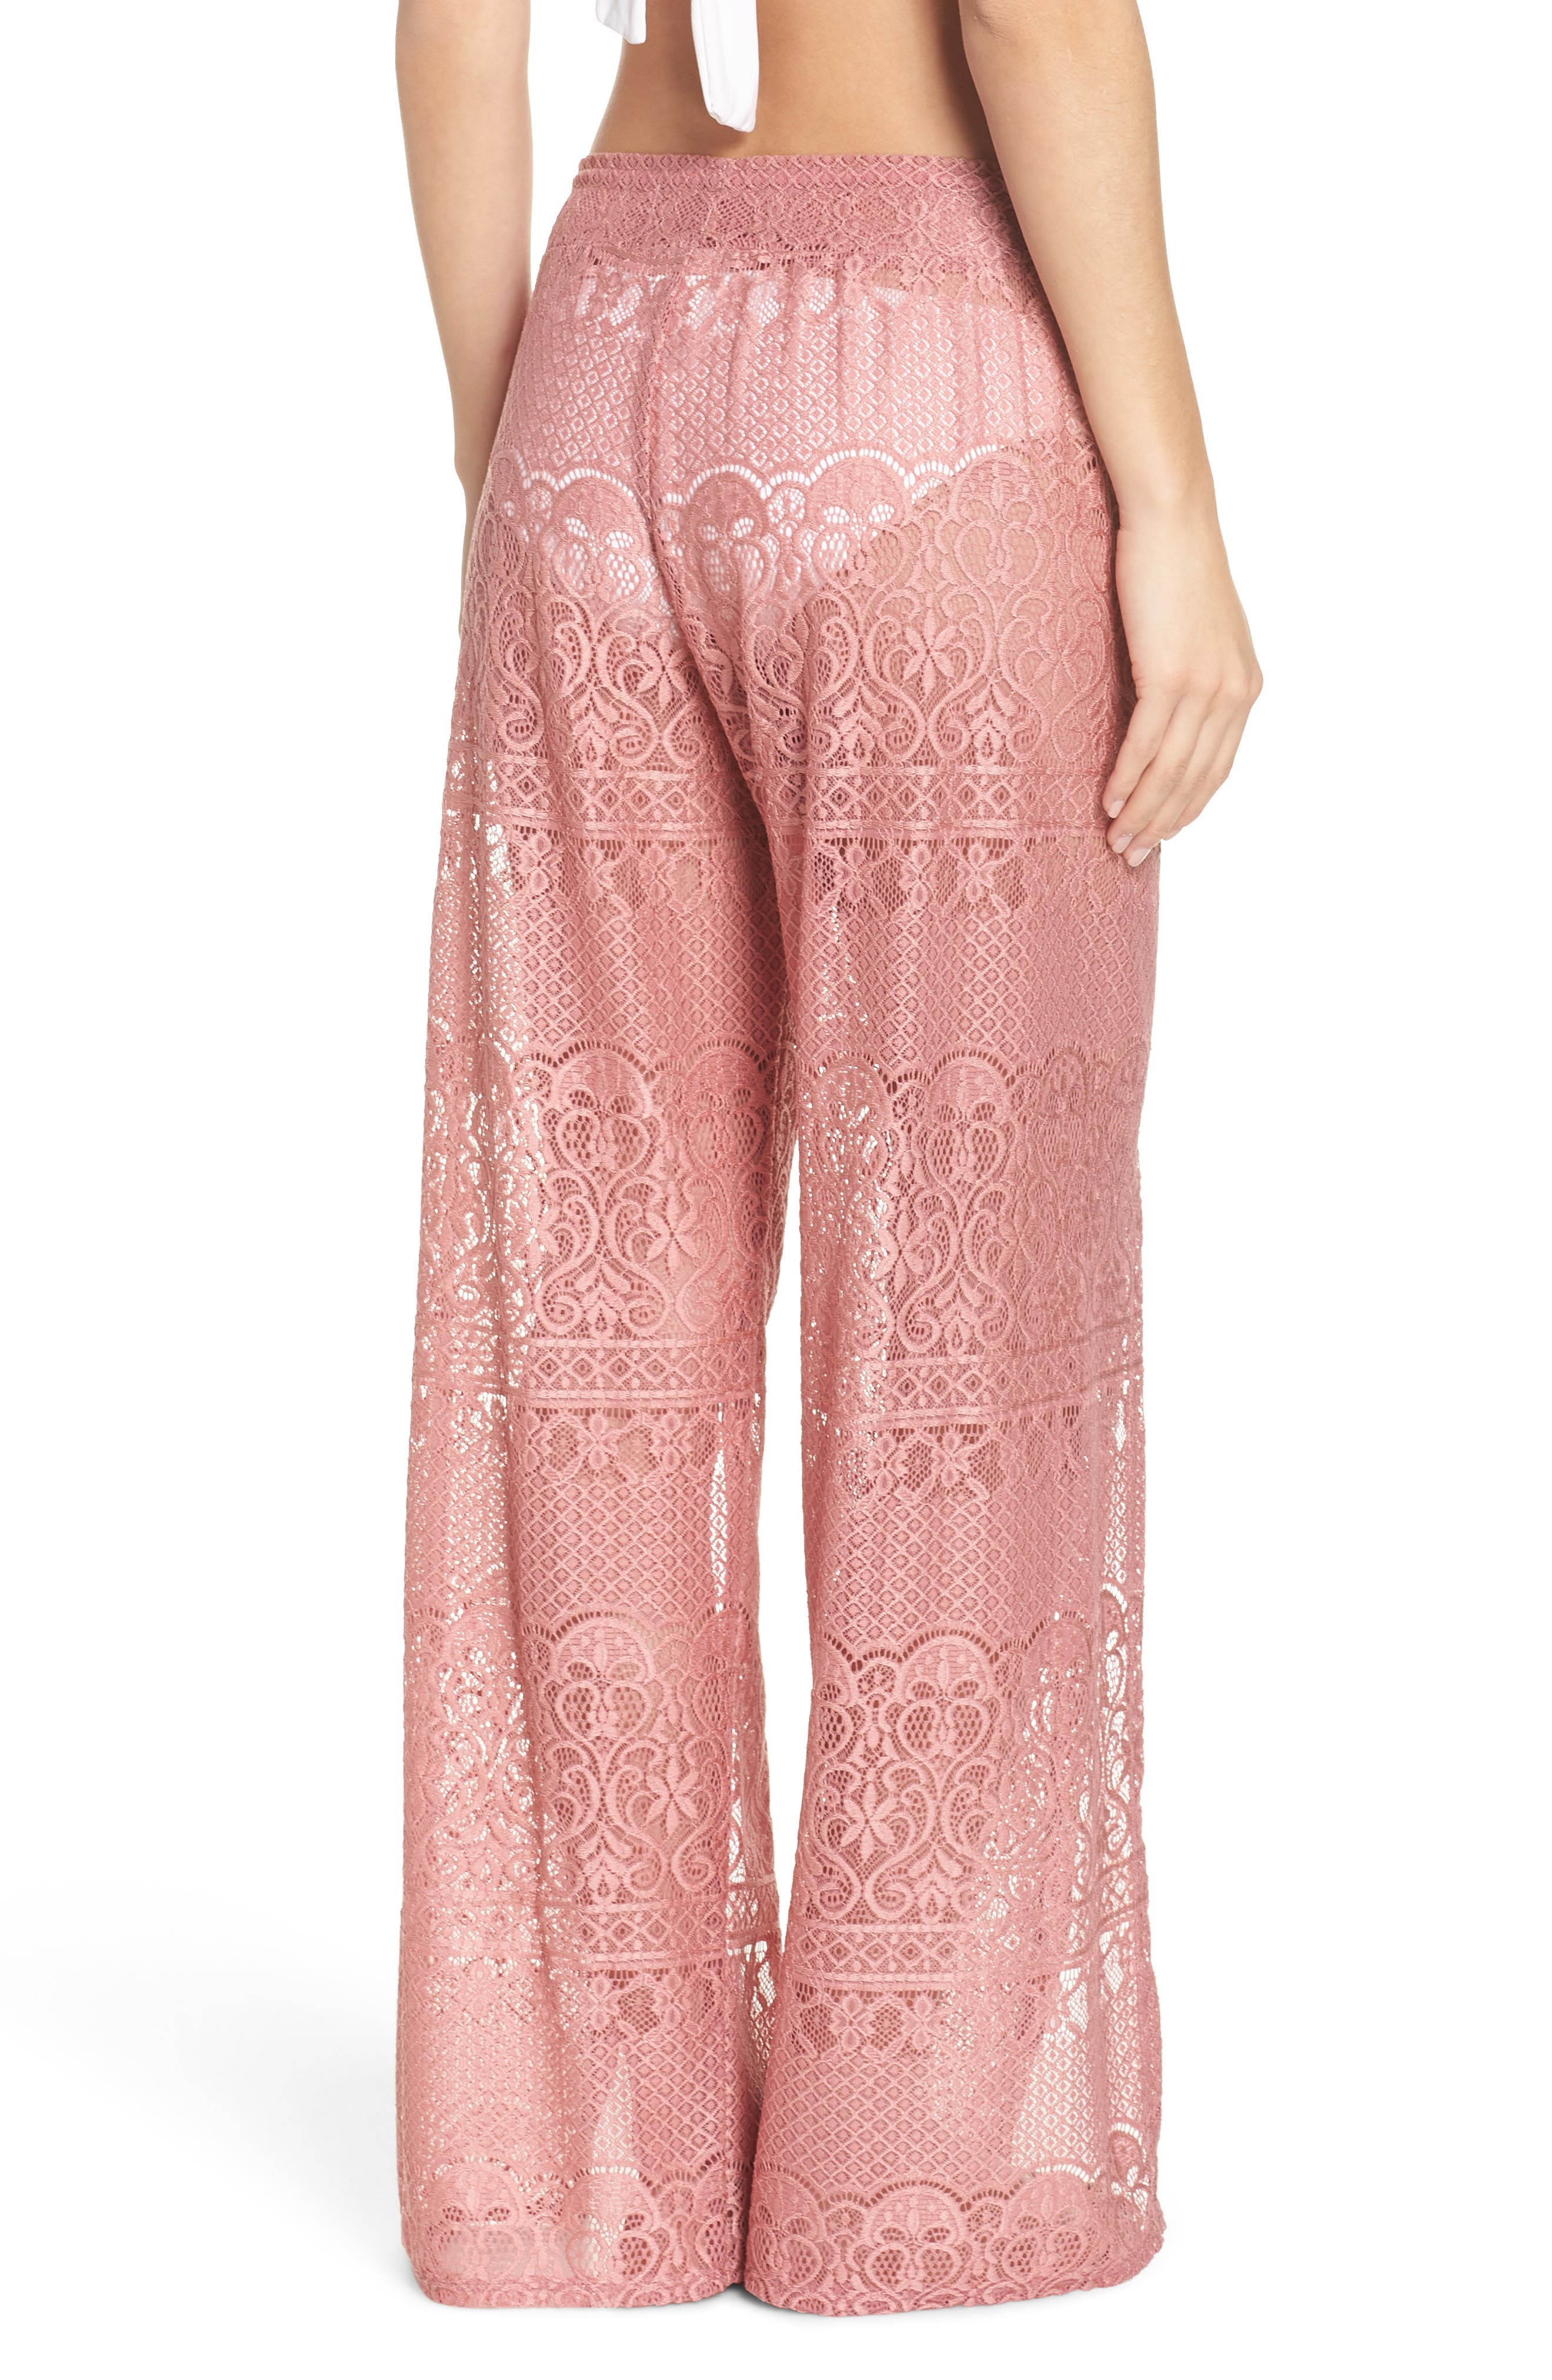 About Lace Cover-Up Pants,                             Alternate thumbnail 2, color,                             DUSTY ROSE